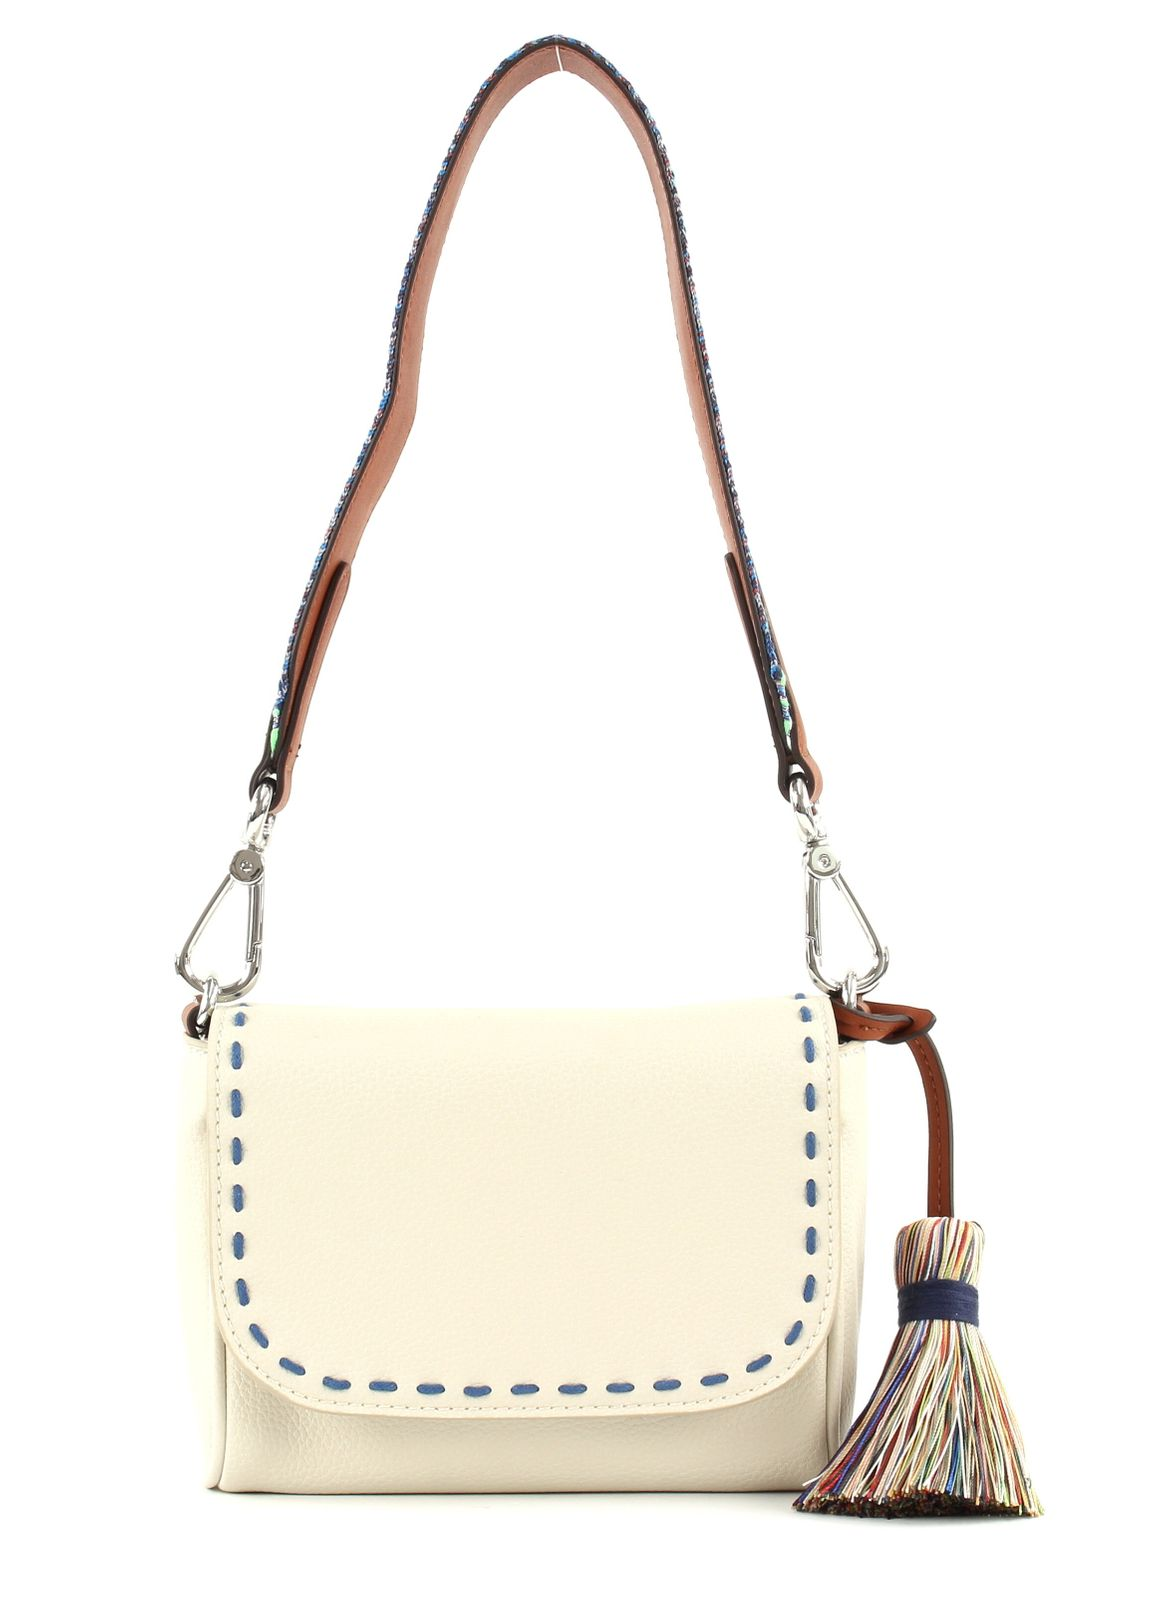 ... Cash on Delivery, Invoice and sofortüberweisung.deESPRIT Tate Small  Shoulderbag Ice / 38,99 €*Only possible if you pay by Paypal, Amazon  Payments, ...